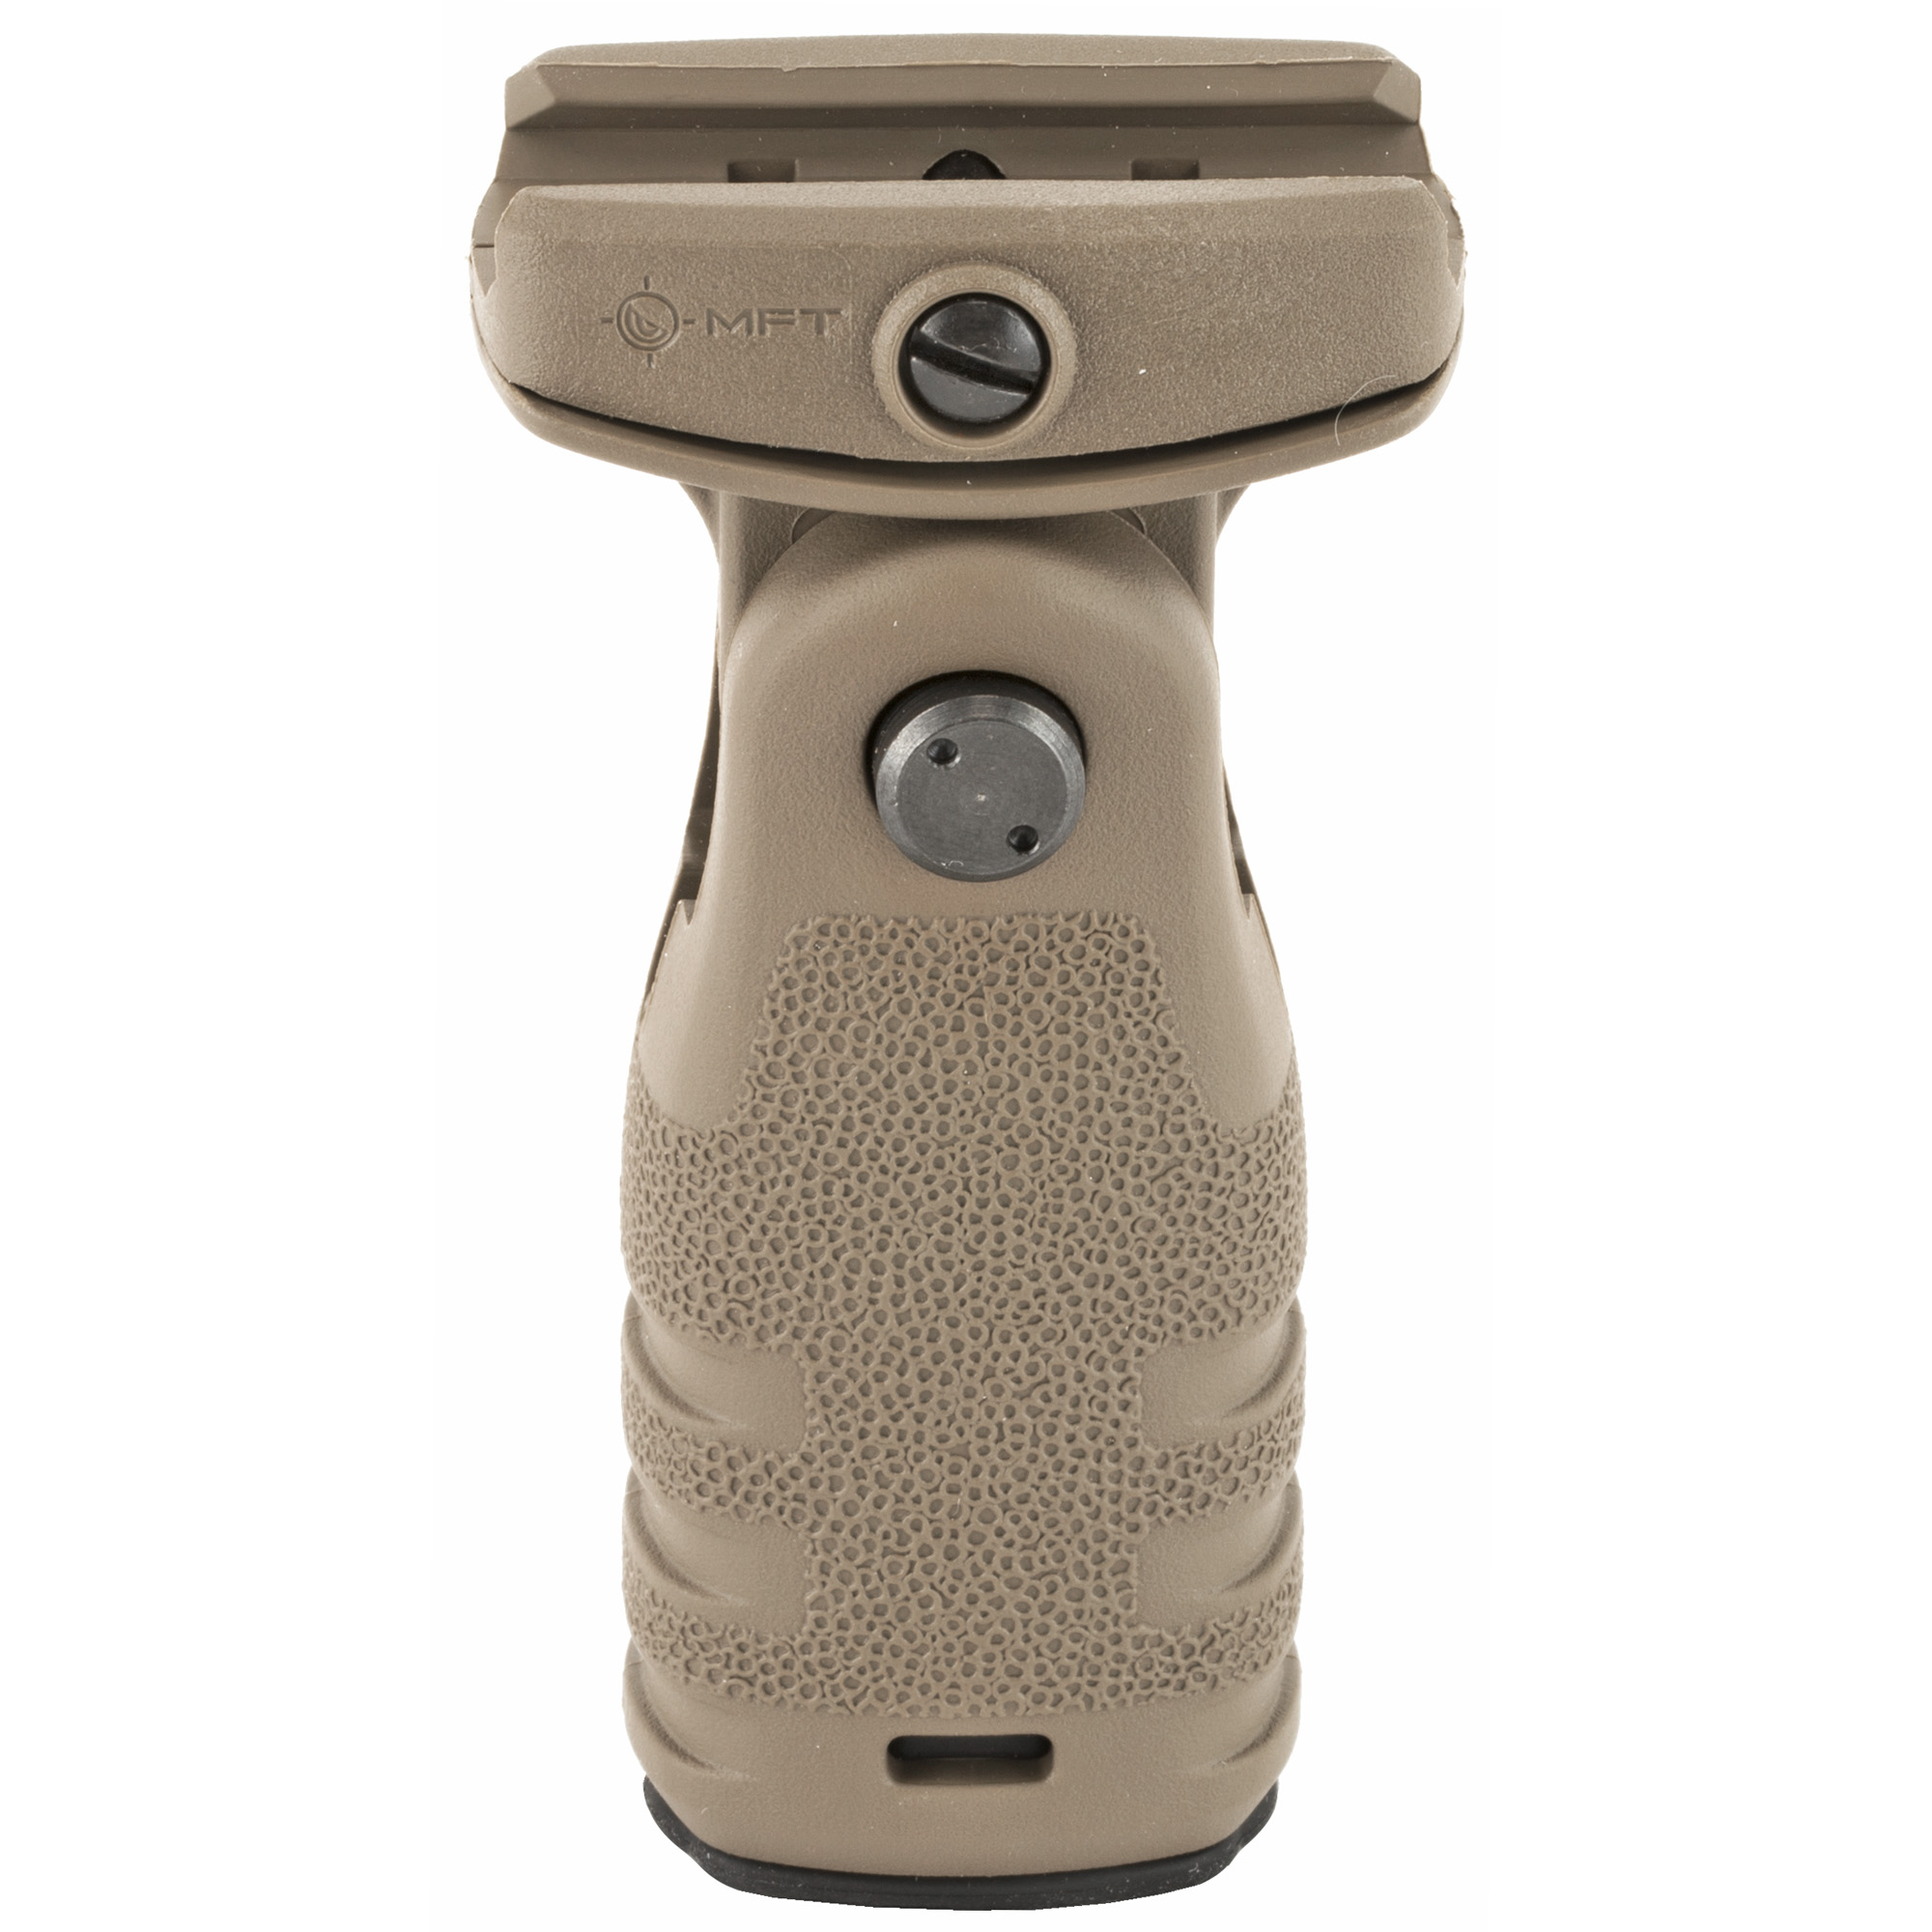 """A textured vertical grip that deploys in either a vertical or horizontal position and provides a positive grip surface. Allows the support hand to apply rearward pressure keeping the weapon shouldered"""" yielding better muzzle control and accuracy."""